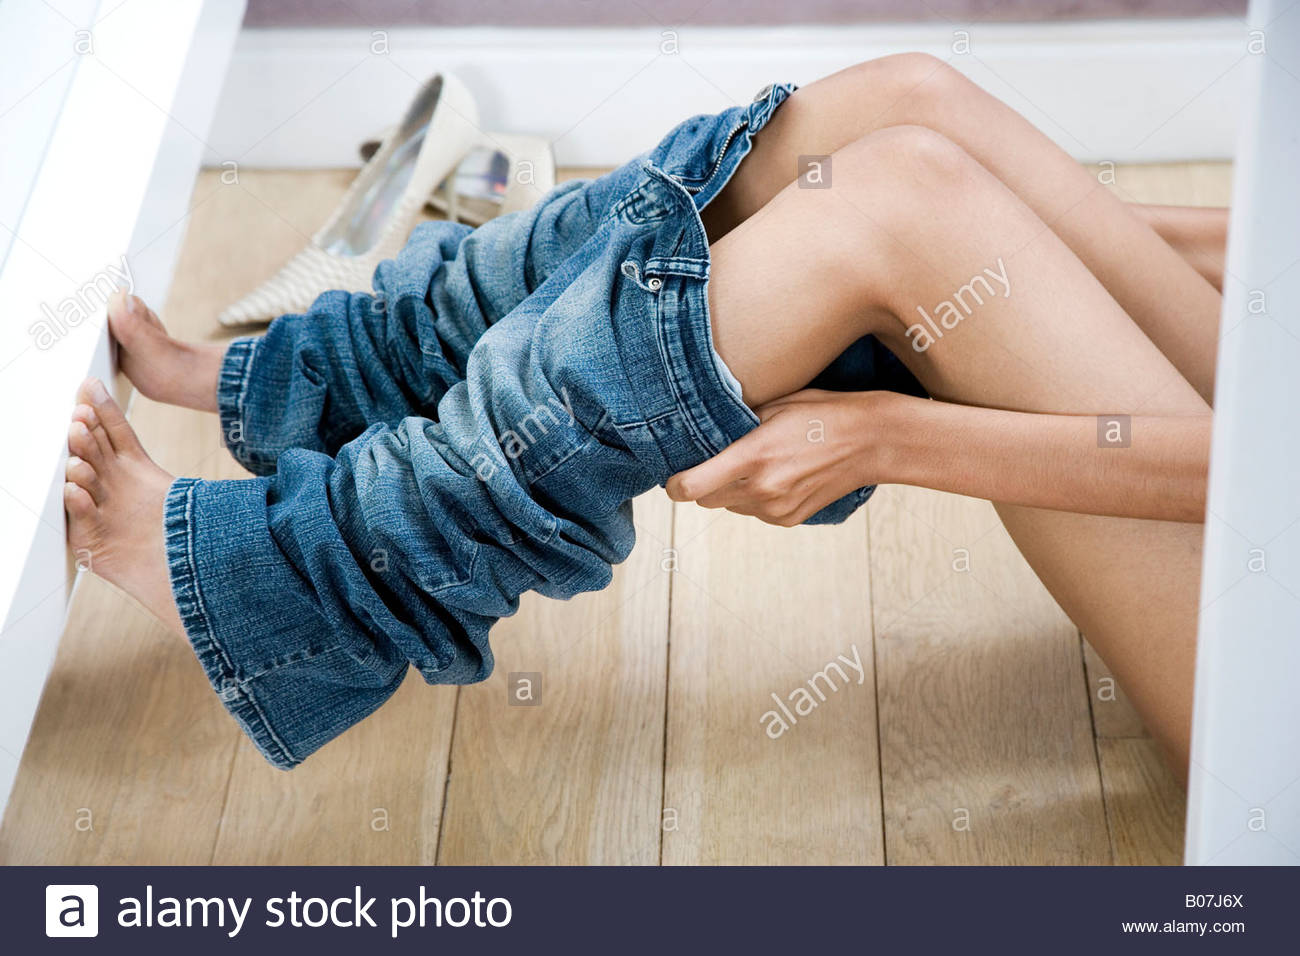 Woman trying on jeans in the changing room of a shop - Stock Image